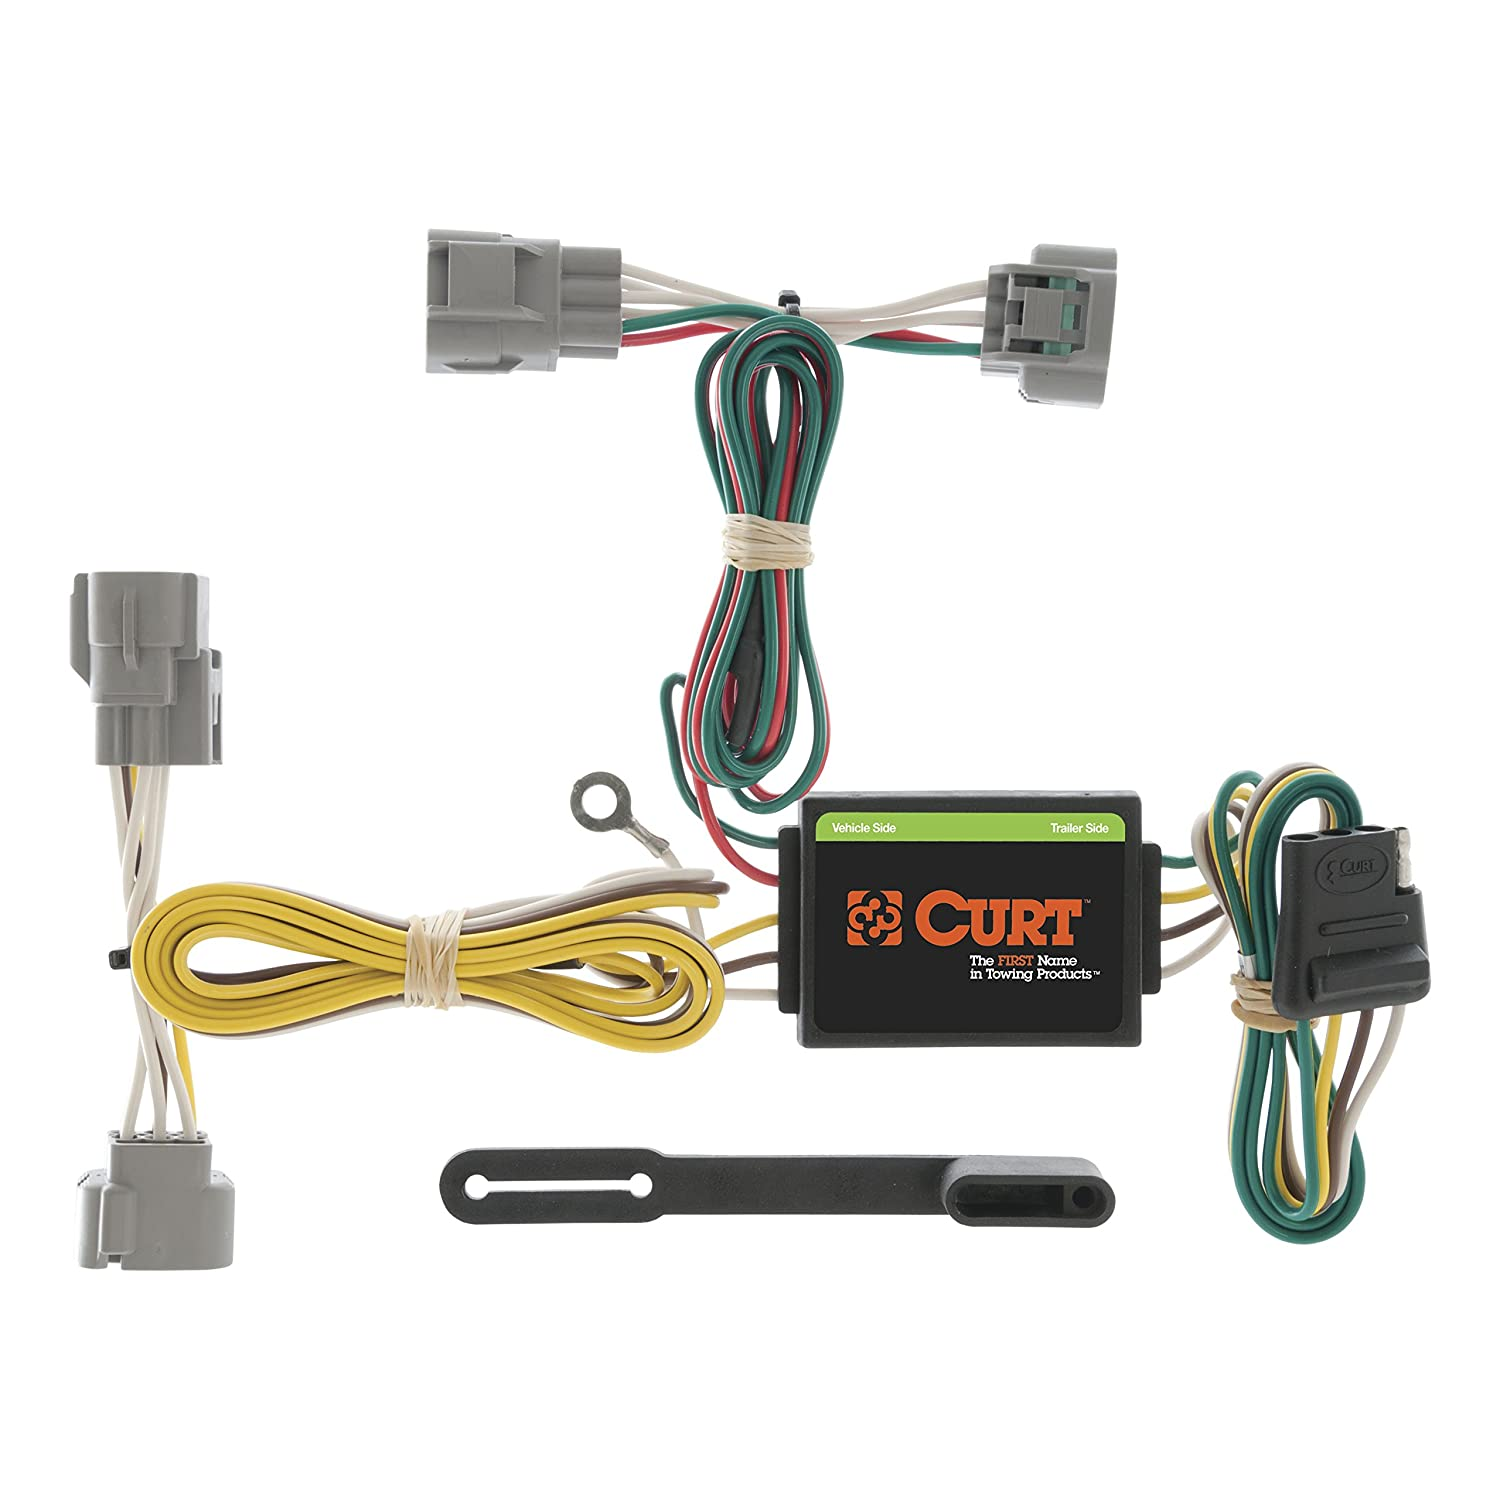 81 ef8zloFL._SL1500_ amazon com curt 55513 custom wiring harness automotive wiring harness for trailer hitch at eliteediting.co